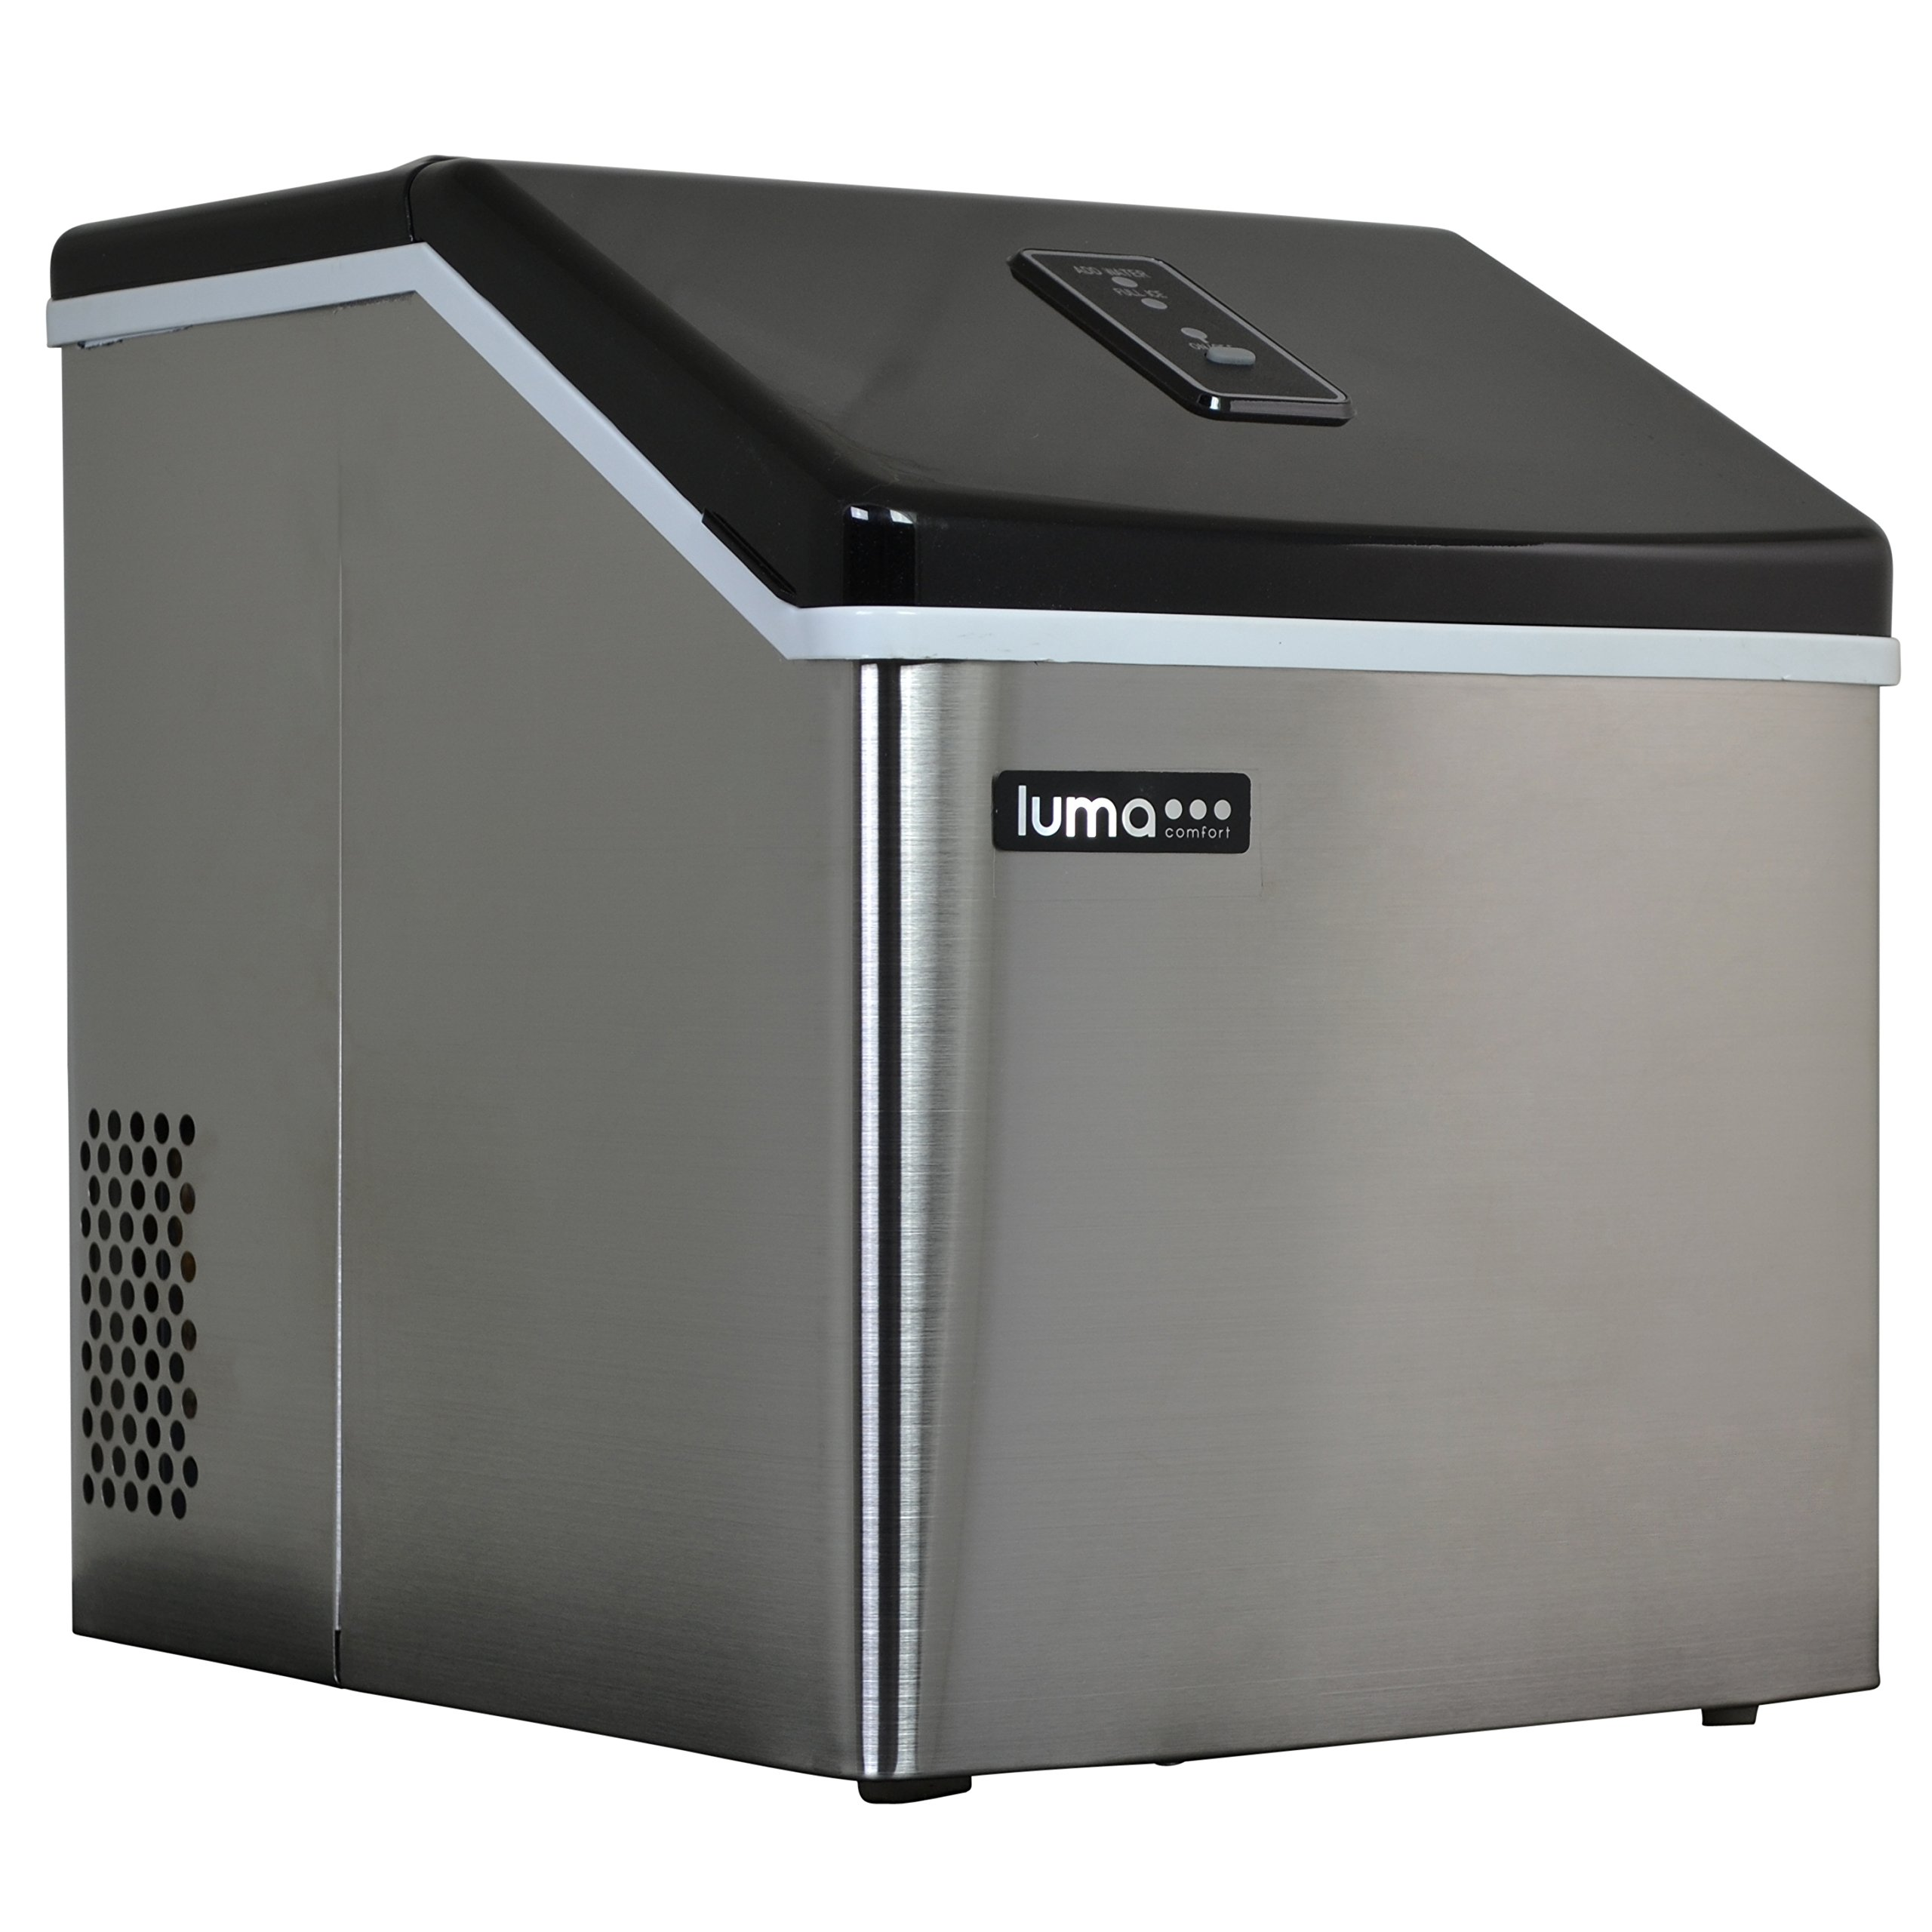 Luma Comfort IM200SS Portable Clear Ice Maker, Stainless Steel